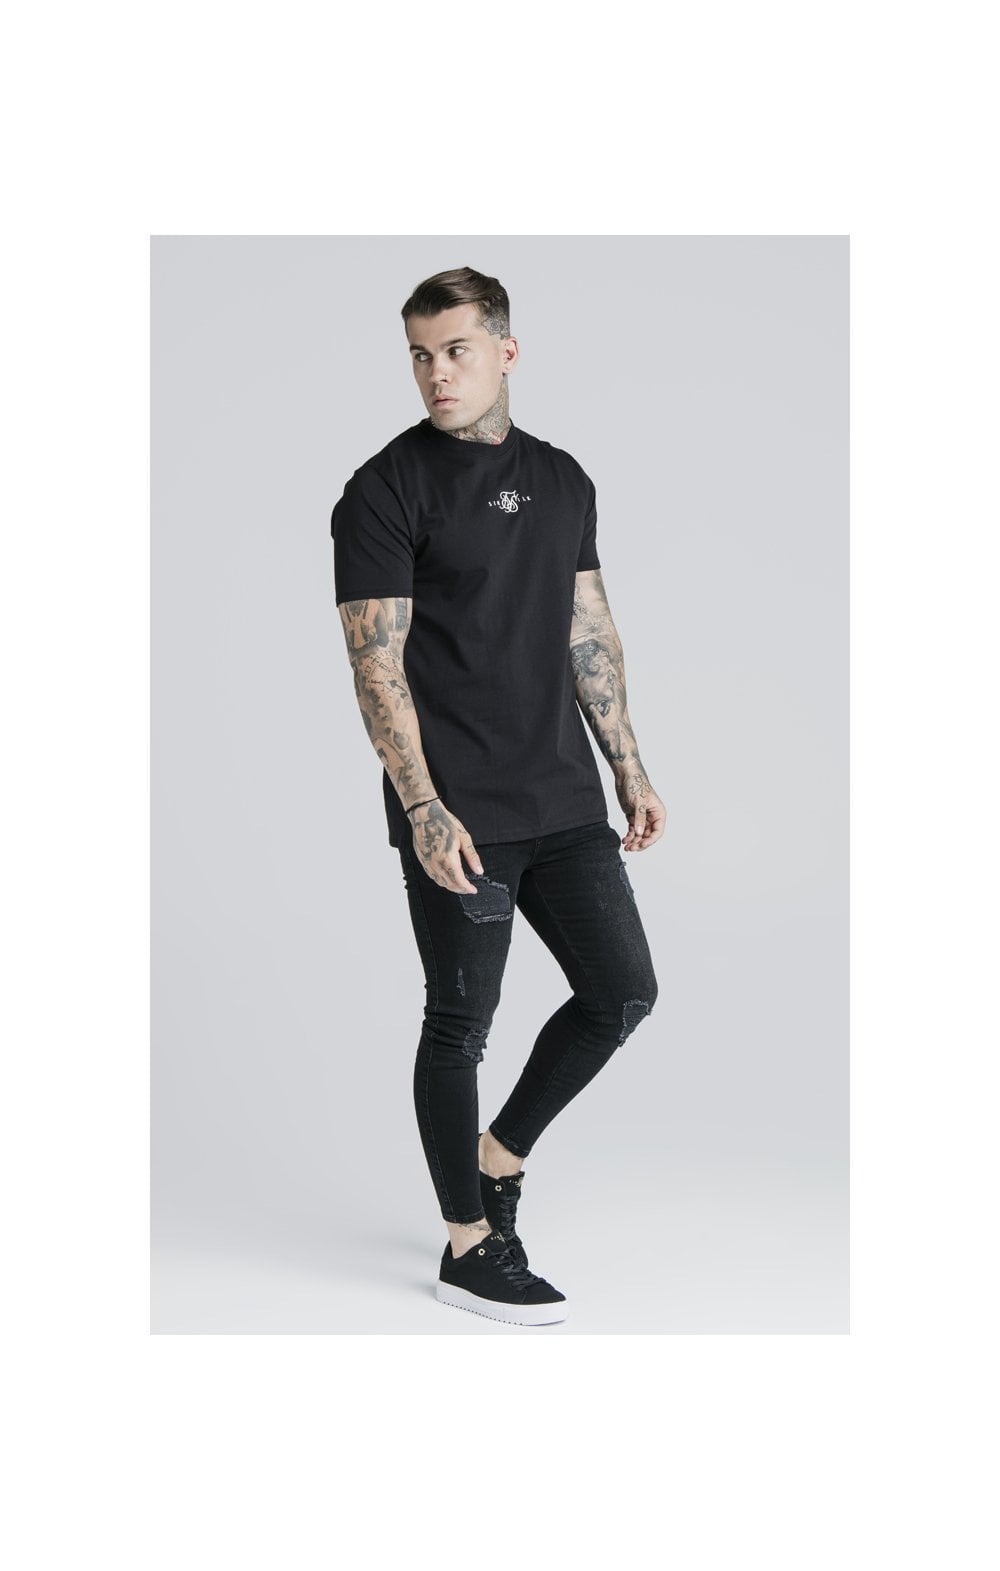 SikSilk S/S Basic Core Tee – Black (2)